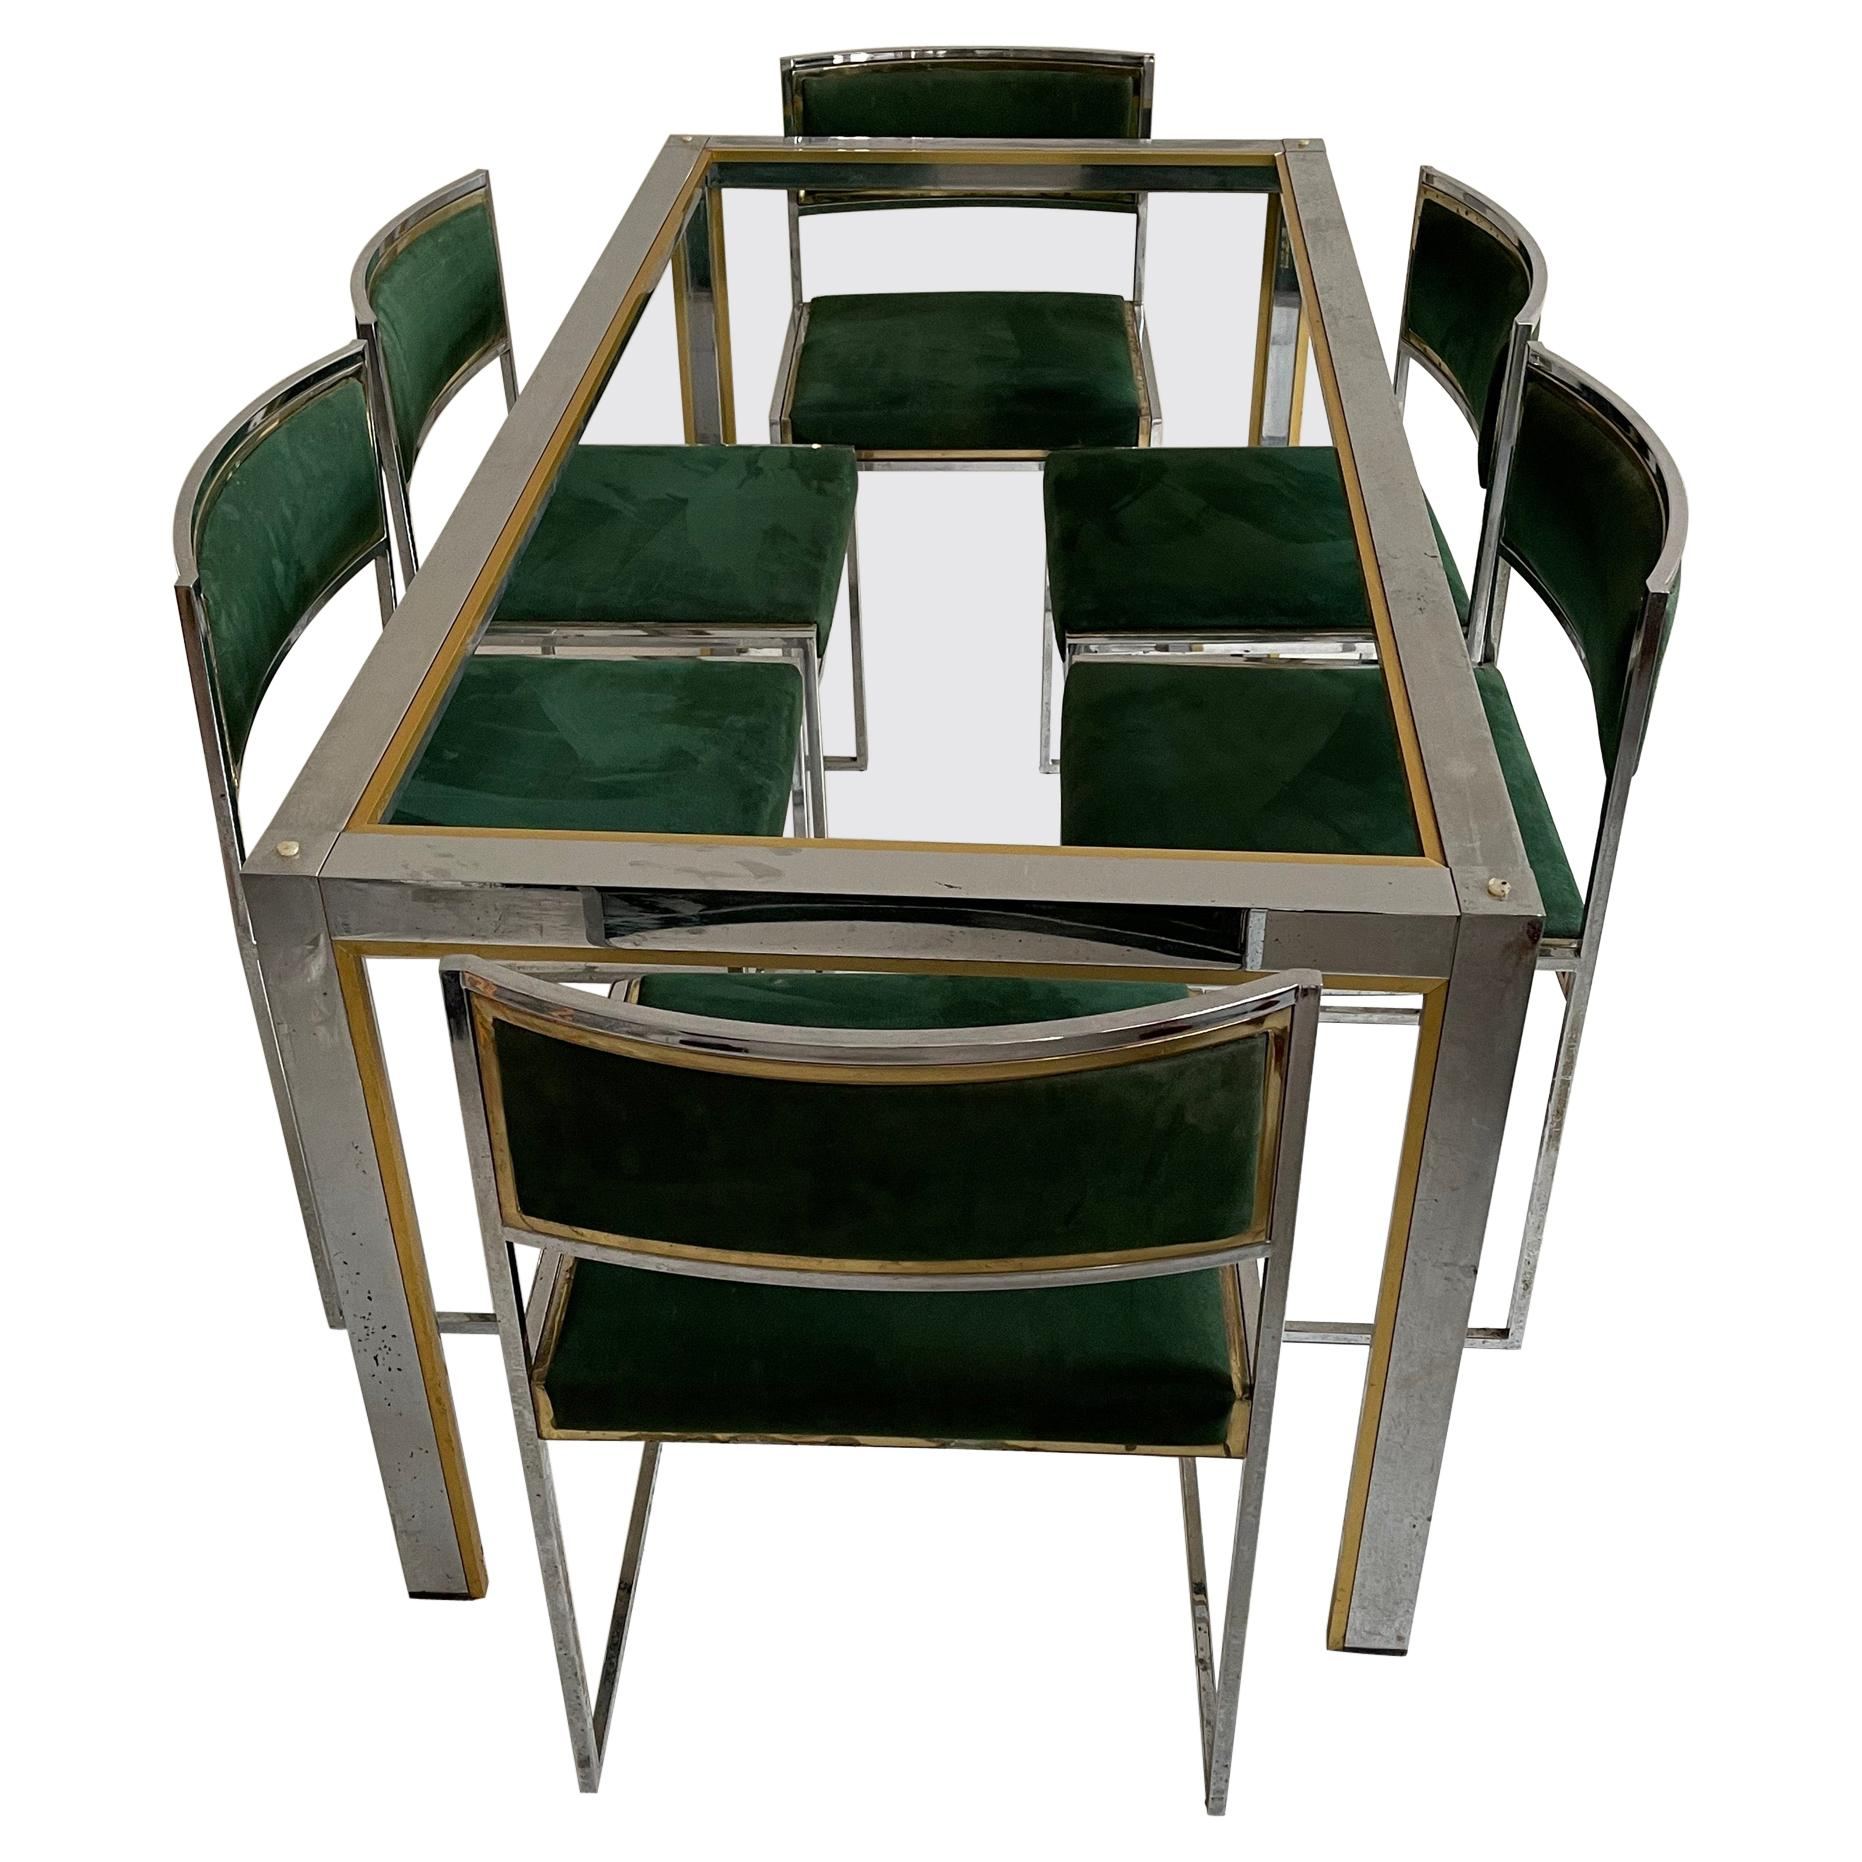 Willy Rizzo Patinated Suede Leather Brass Chrome Dining Room Set, Italy, 1970s